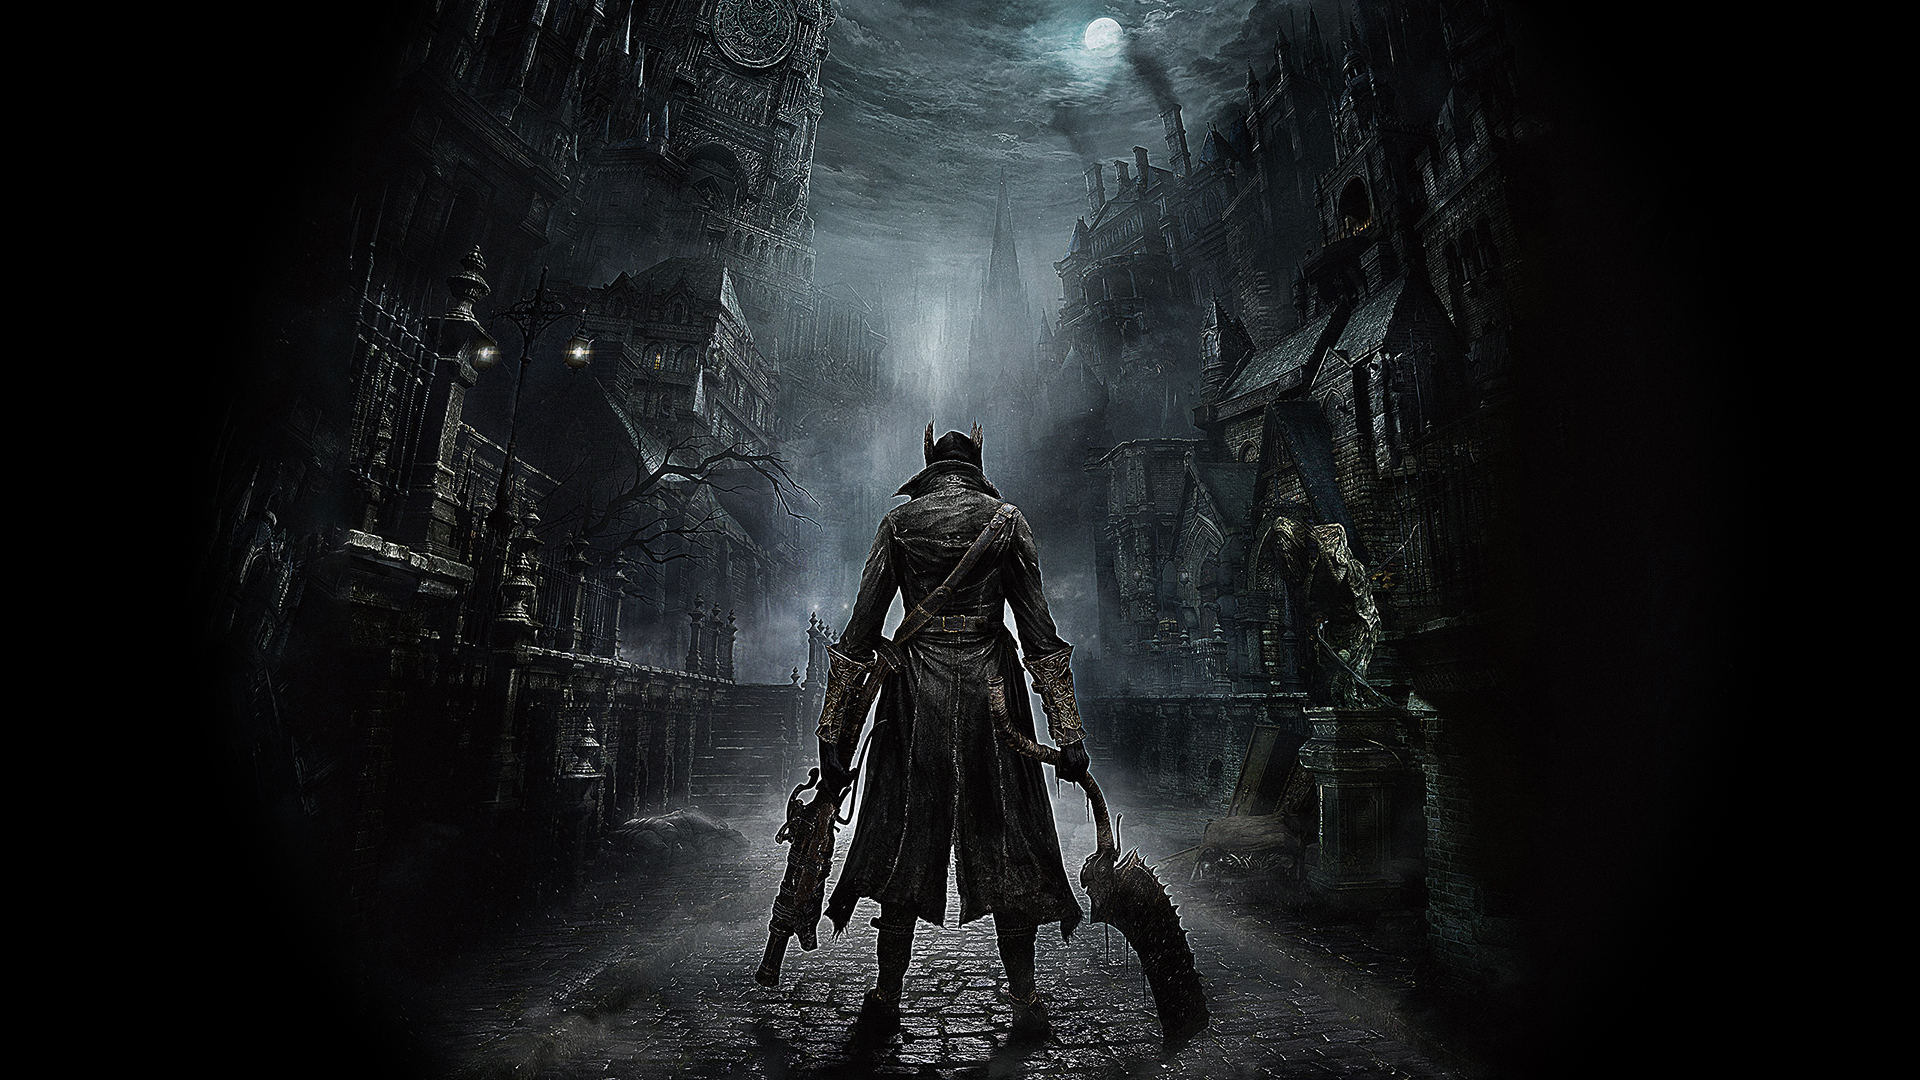 Super Mario Wallpaper Iphone 5 Bloodborne Wallpapers Pictures Images